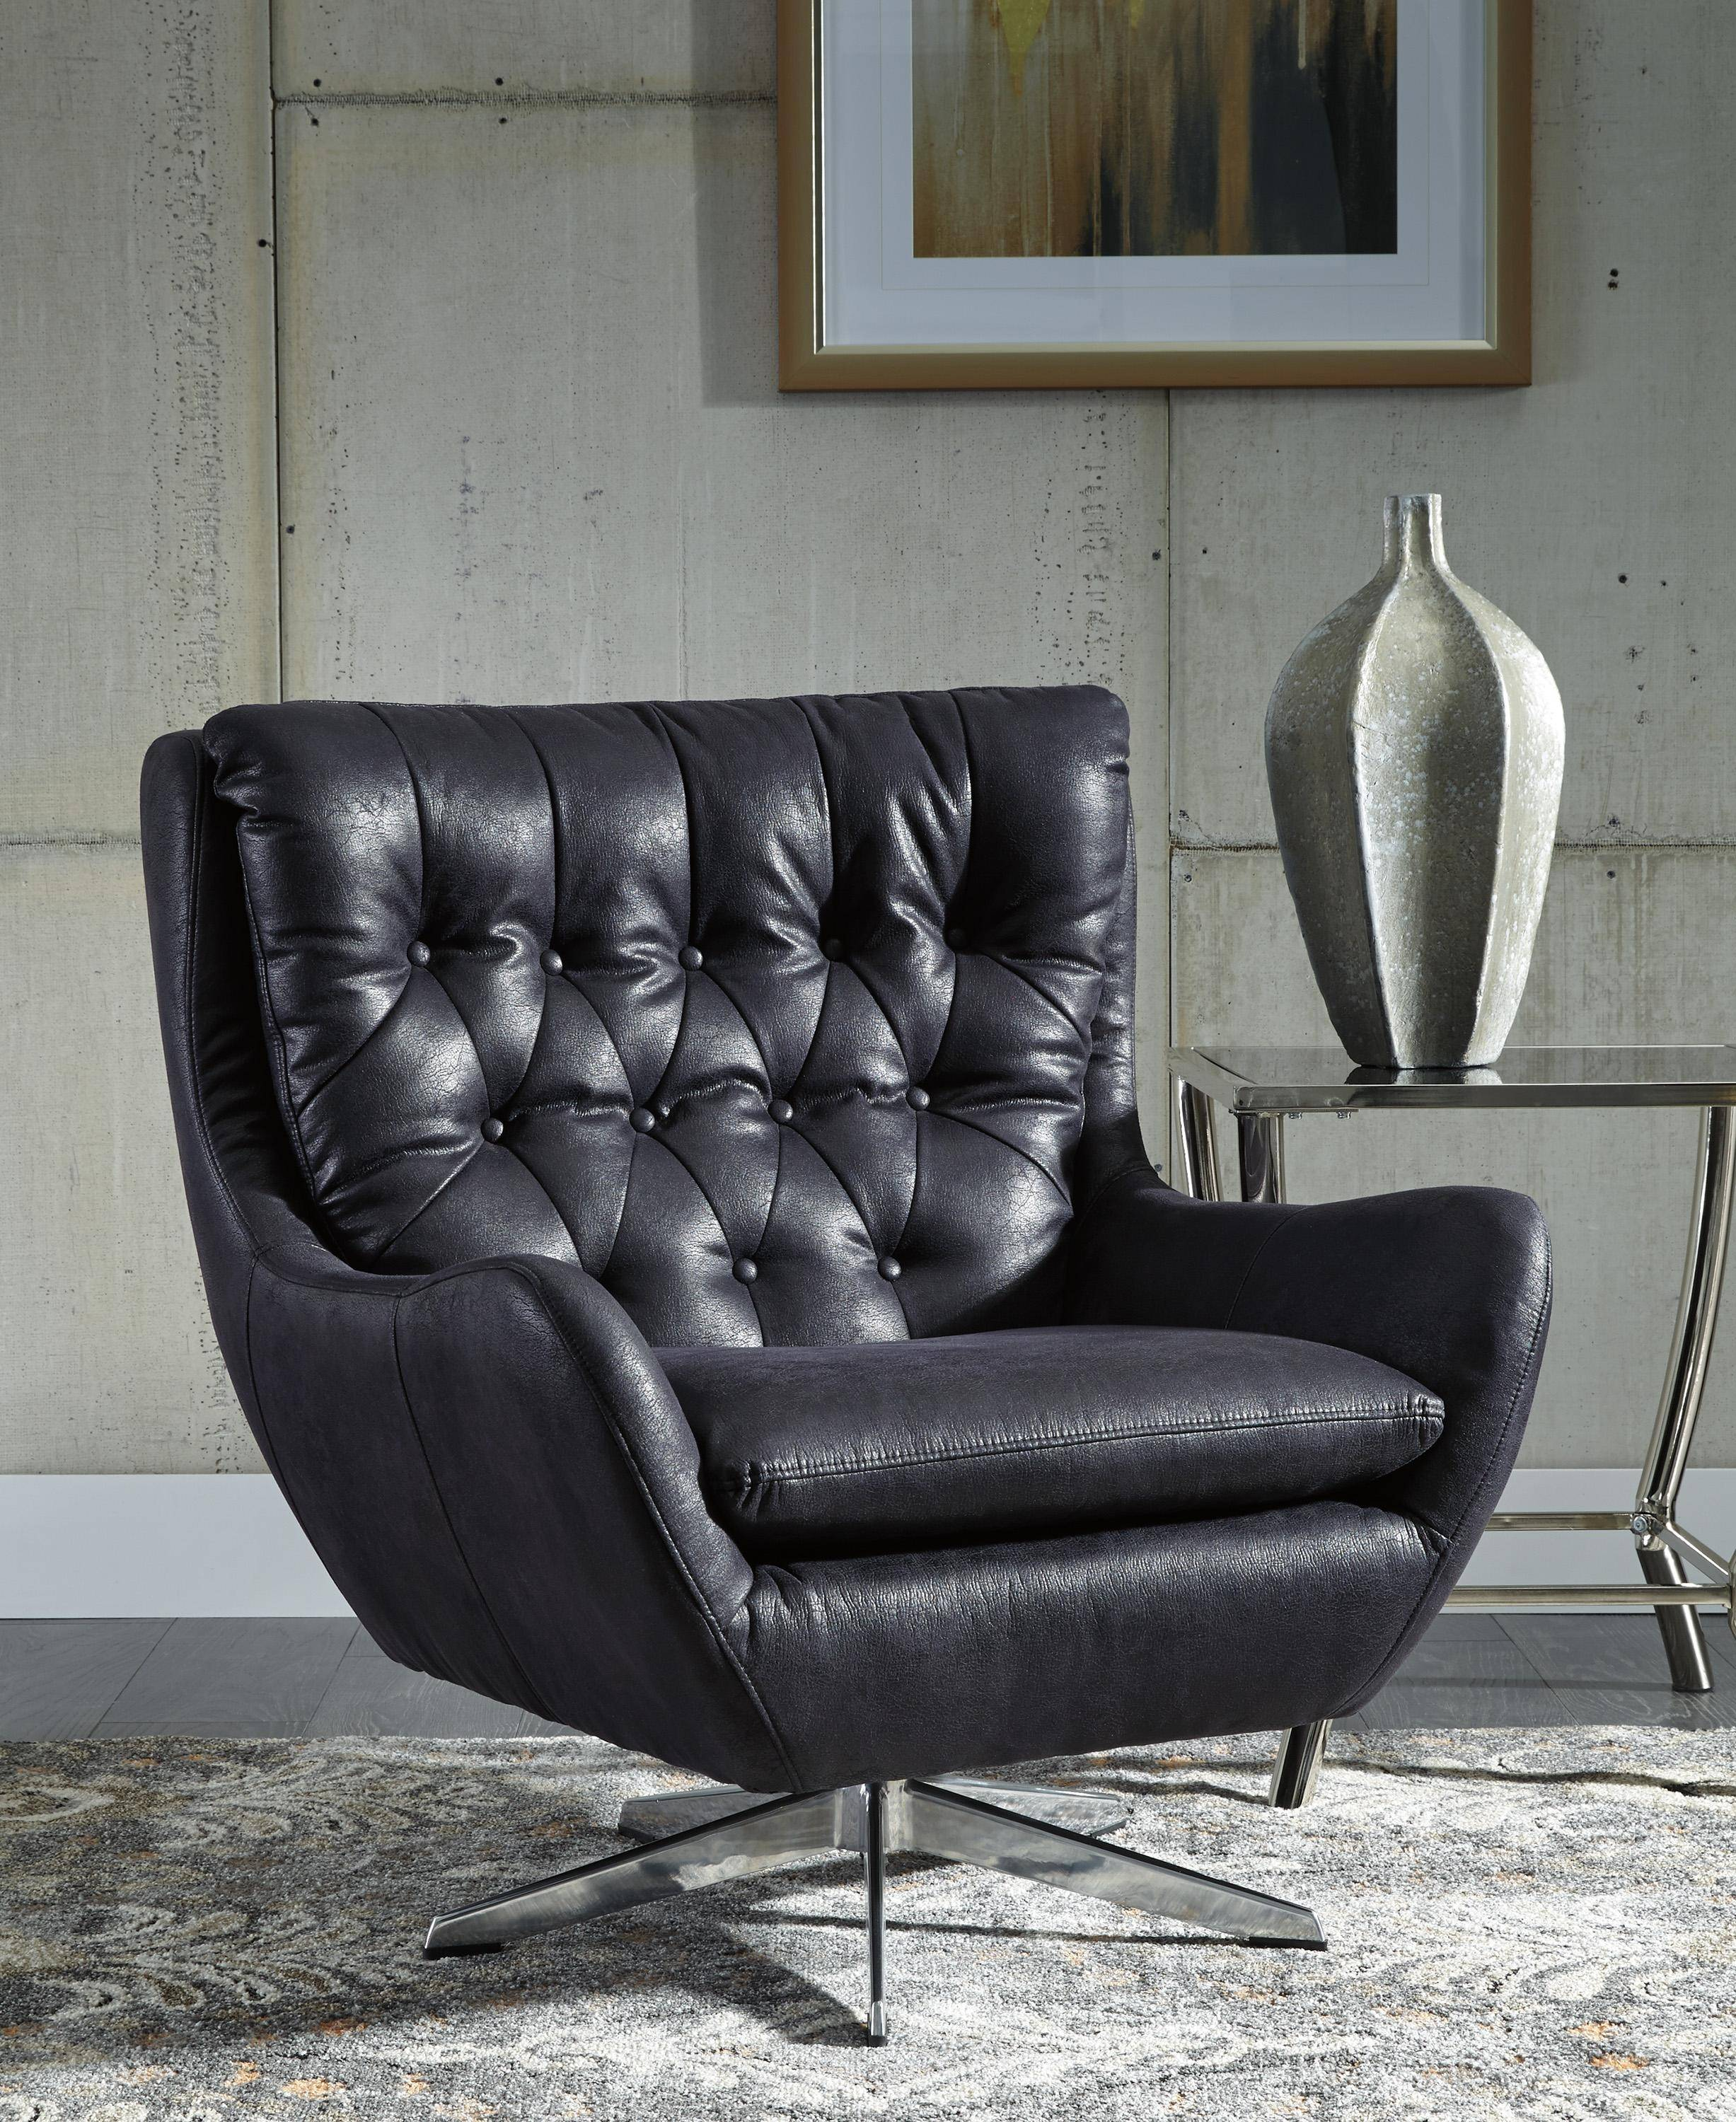 Surprising Ashley Velburg A3000094 Accent Chair In Black Faux Leather Ncnpc Chair Design For Home Ncnpcorg